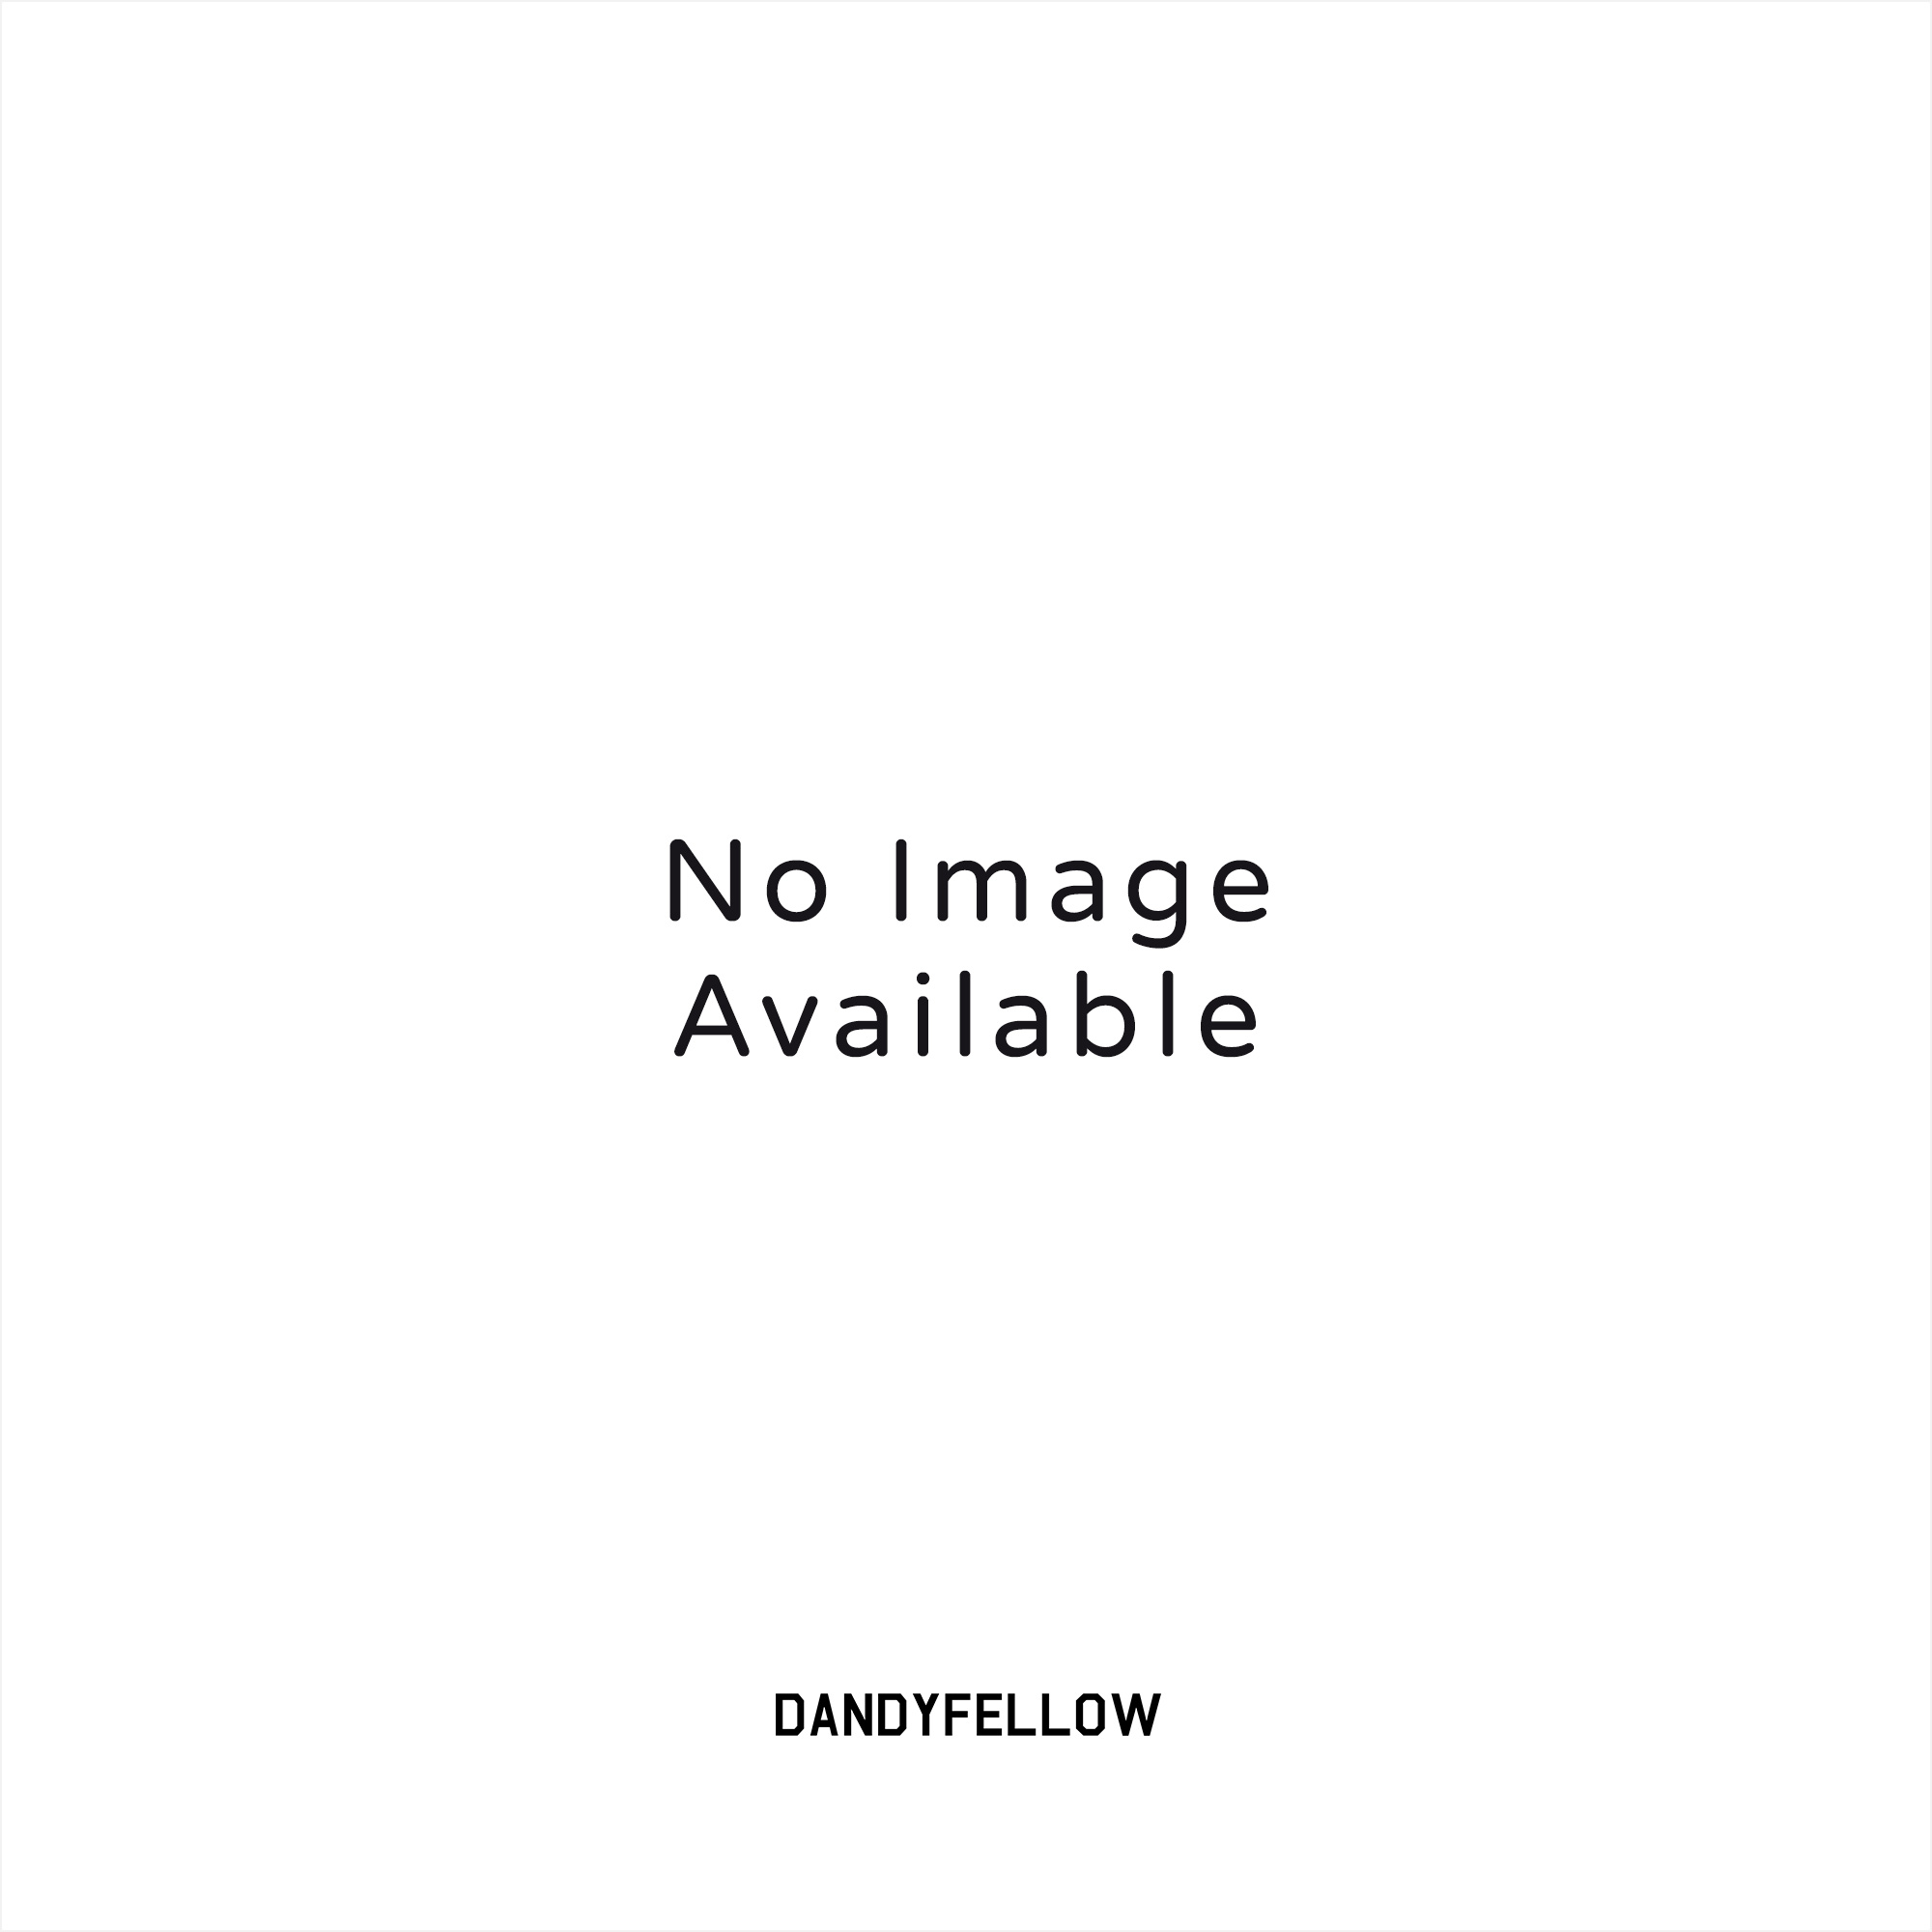 dd54a3a32941 Fred Perry Textured Knit French Navy Polo Shirt K4146-143